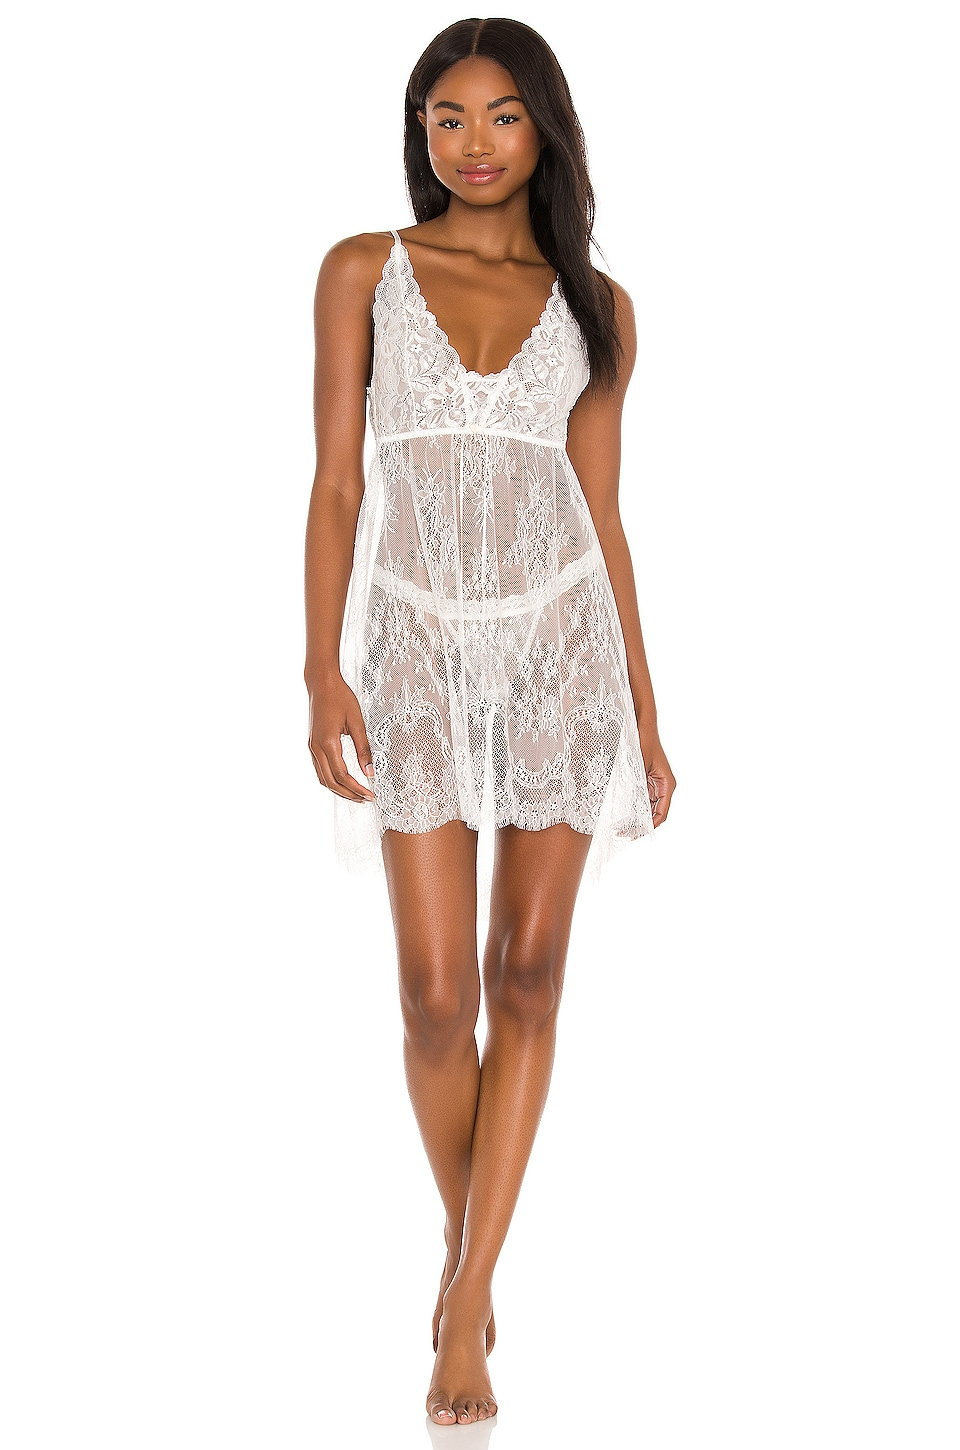 Hanky Panky Victoria Lace Chemise with G-String in Light Ivory